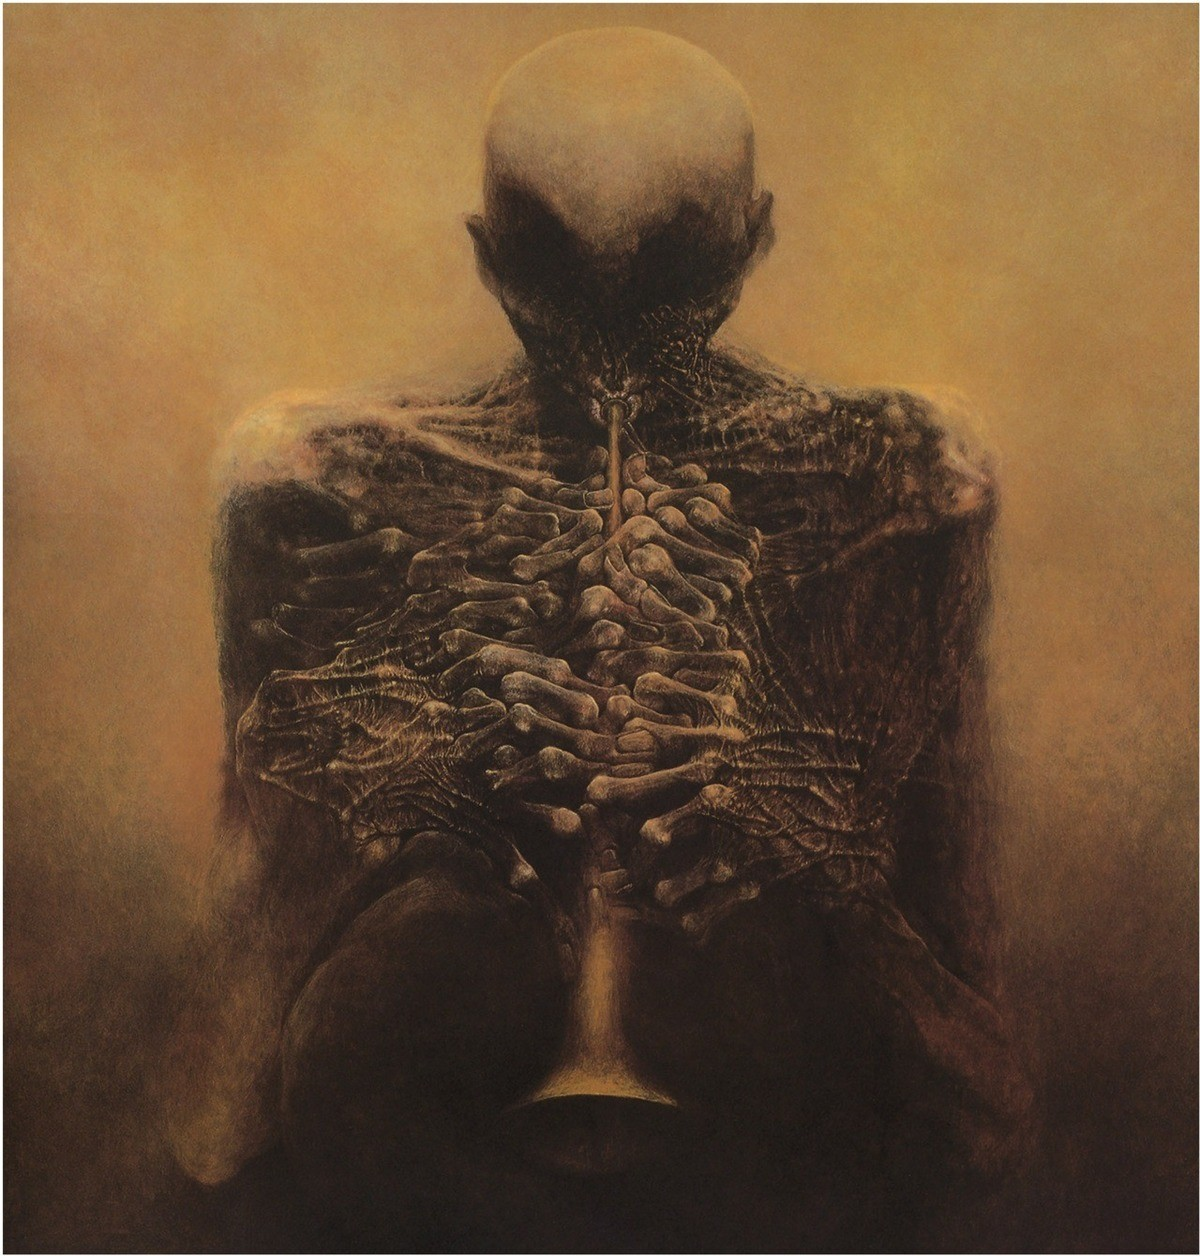 uptight ambient Butterfly. .. The trumpeter be zdzisław beksiński. Dude made a bunch of nightmare art